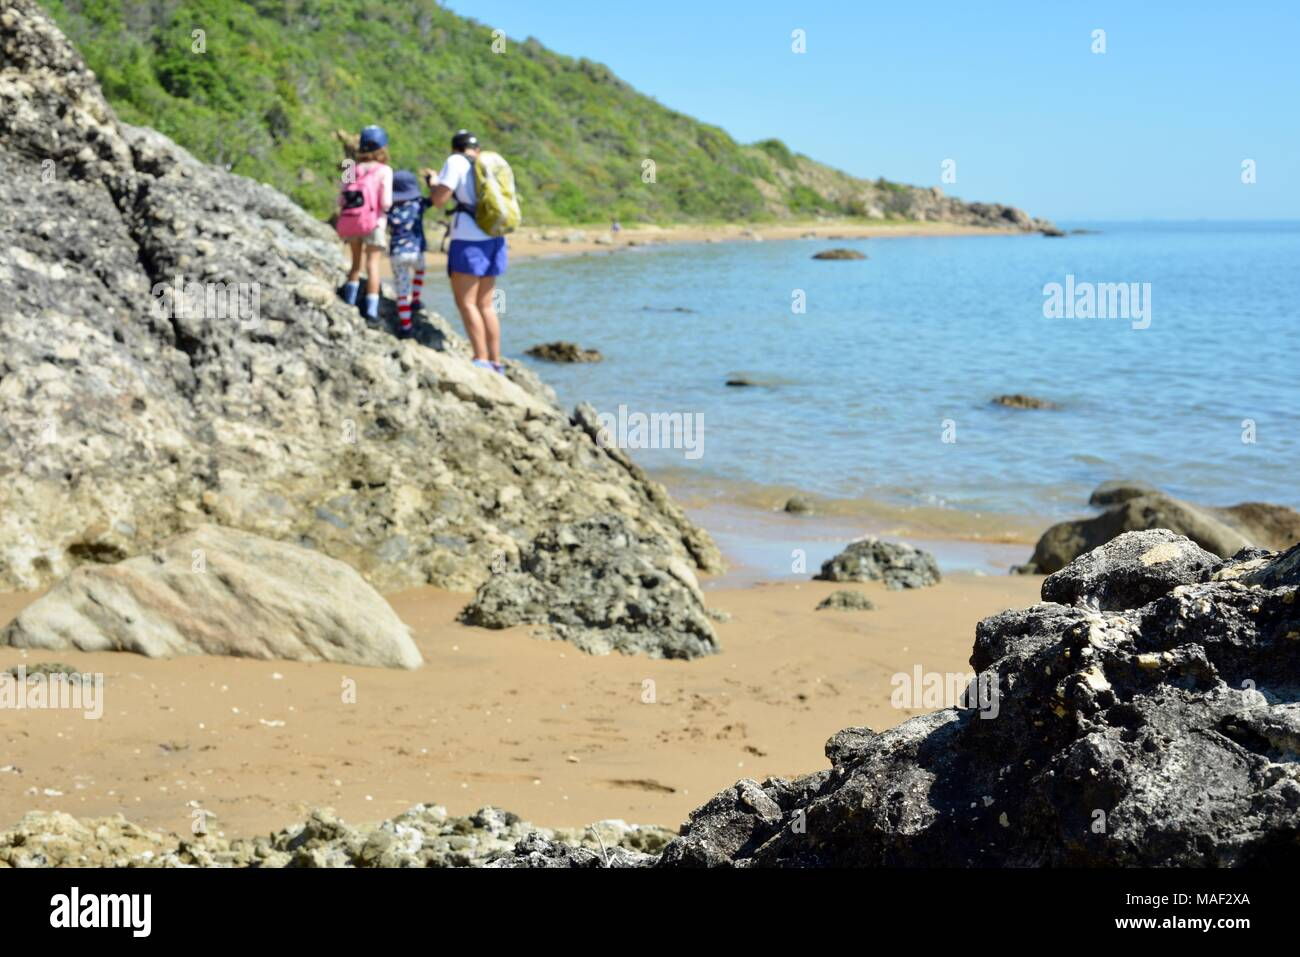 Mother and two daughters walk near the ocean tropical beach and forest, Shelly Cove trail at Cape Pallarenda Conservation Park Queensland Australia - Stock Image